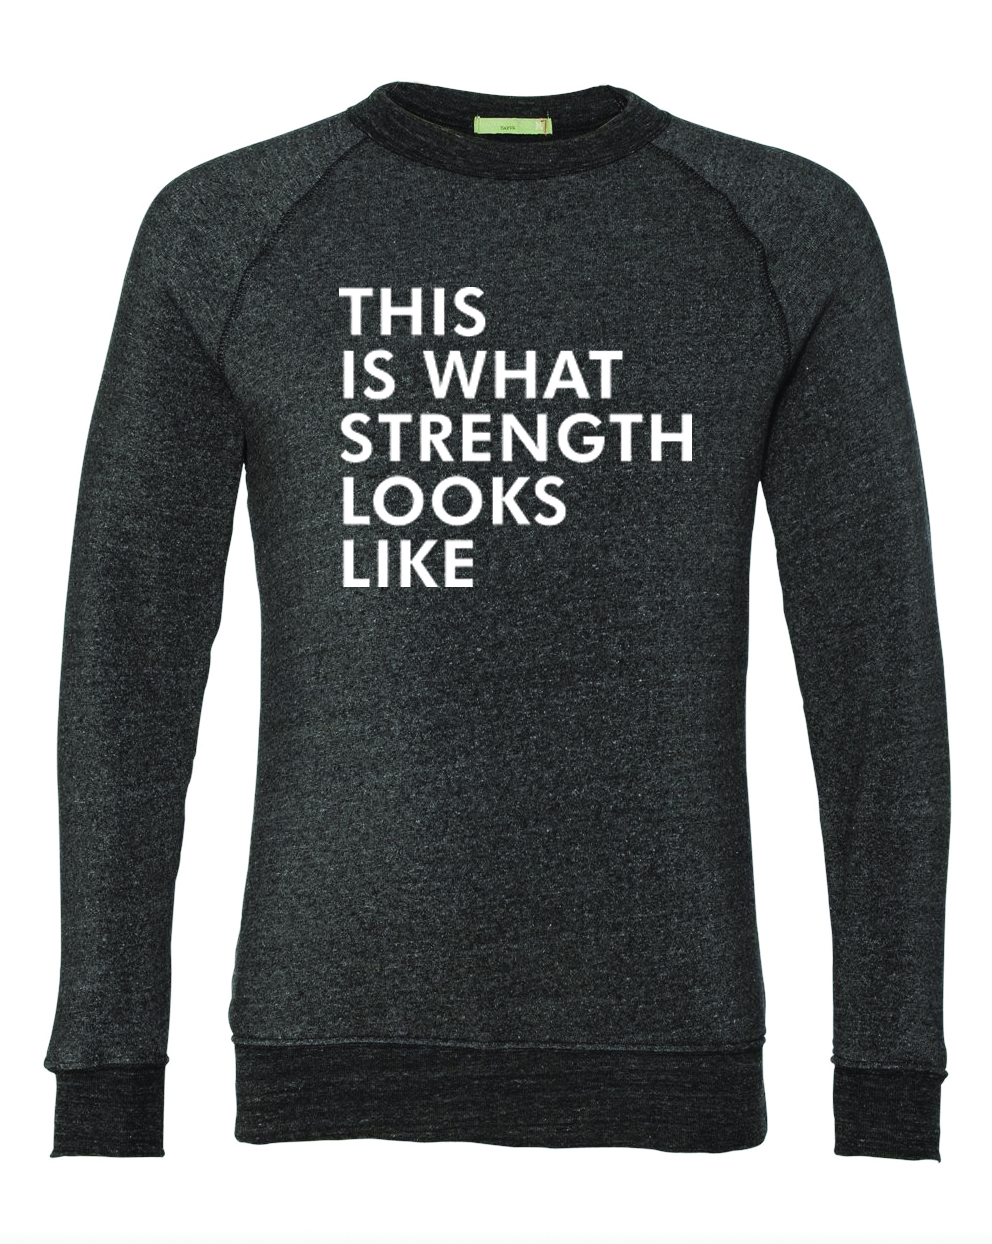 STRENGTH_sweatshirt_ecoblk.JPG